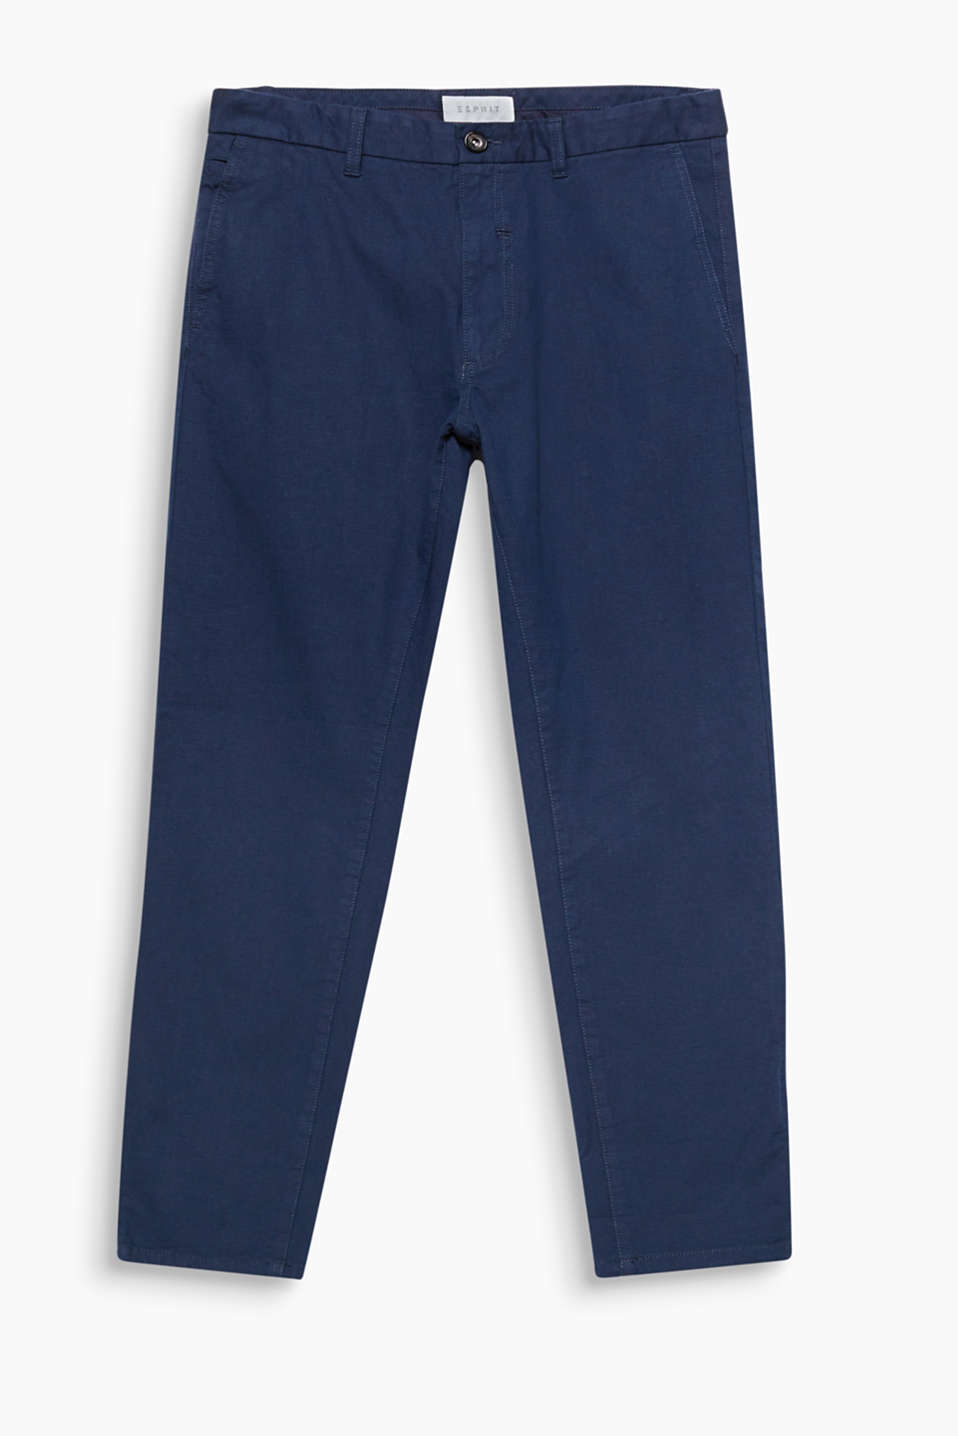 Cotton chinos with an interwoven pattern and added stretch for comfort